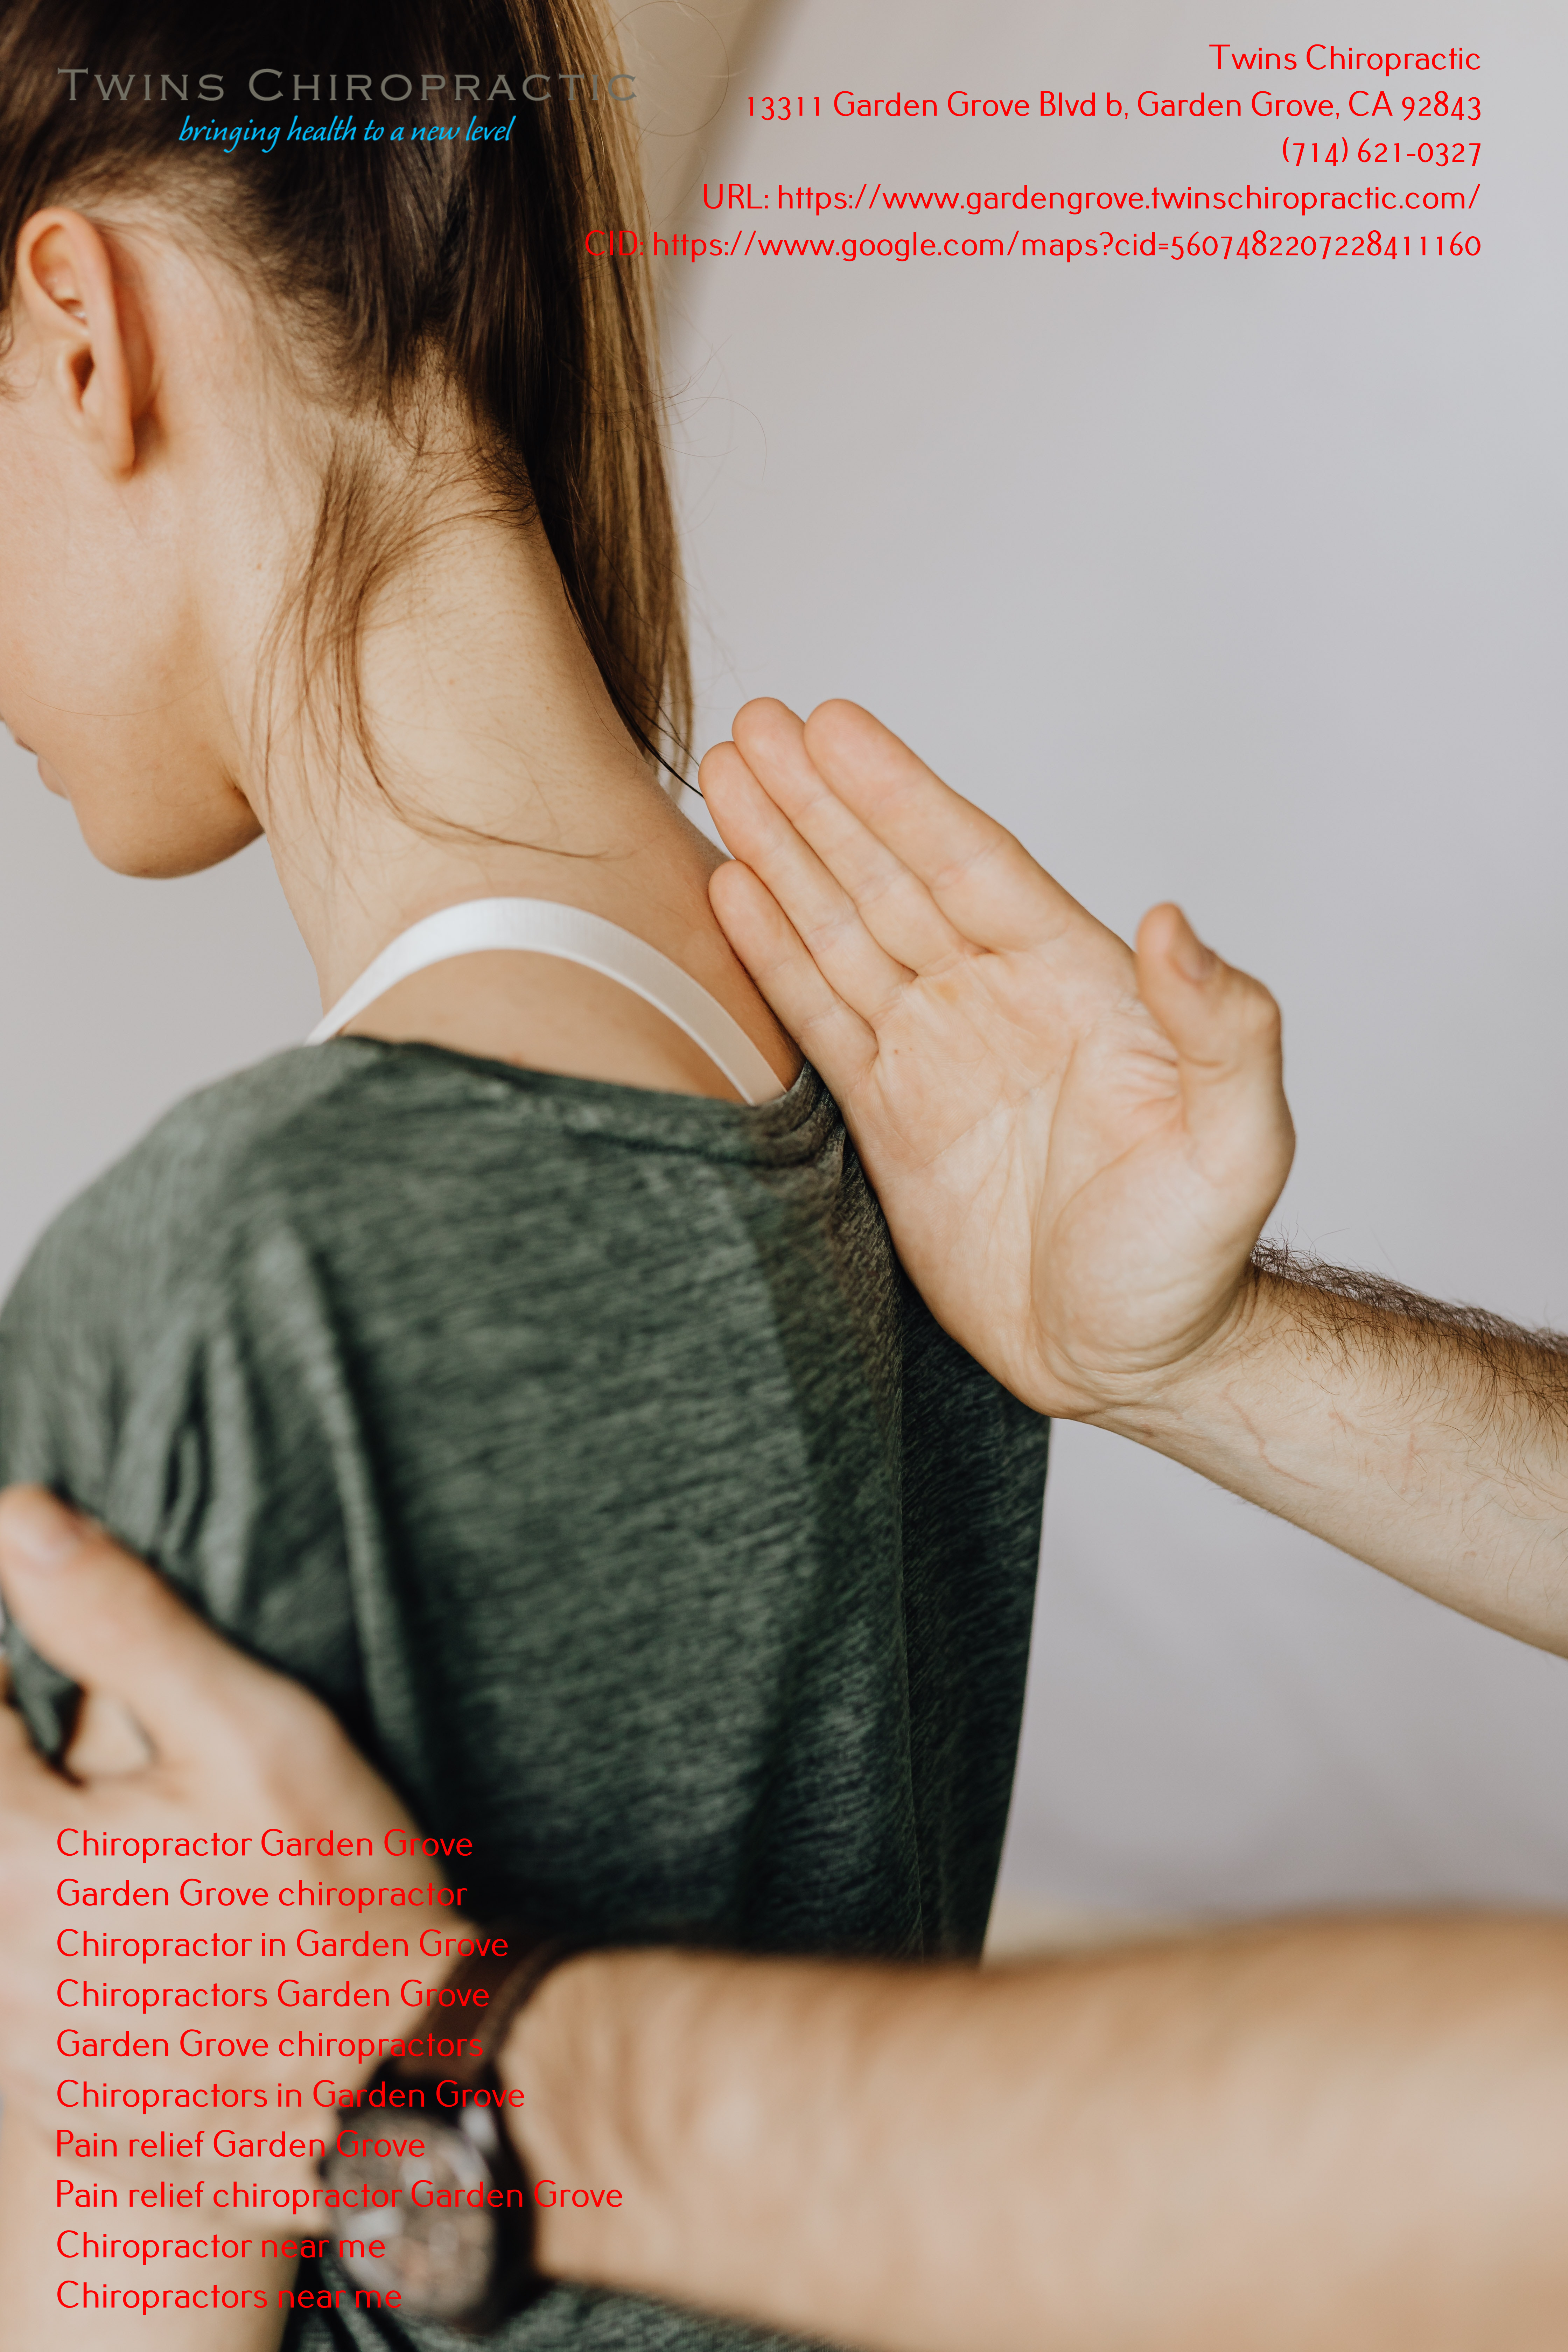 Twins Chiropractic (M2) - 3